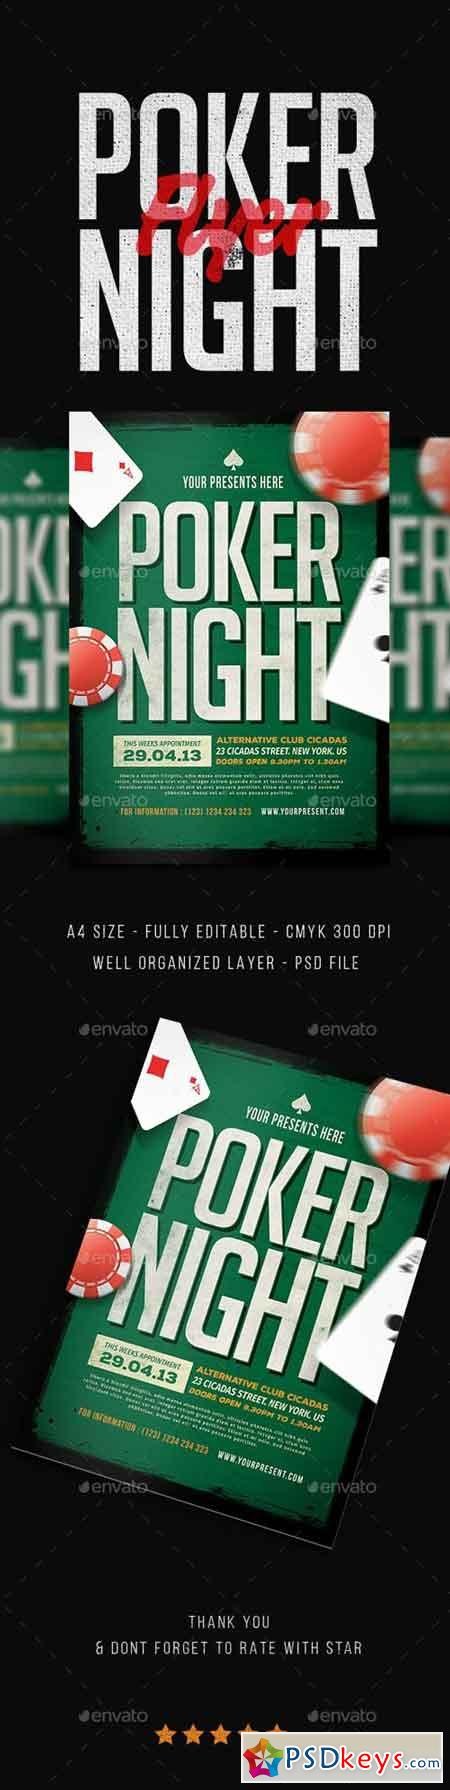 Poker Night Flyer 18610131